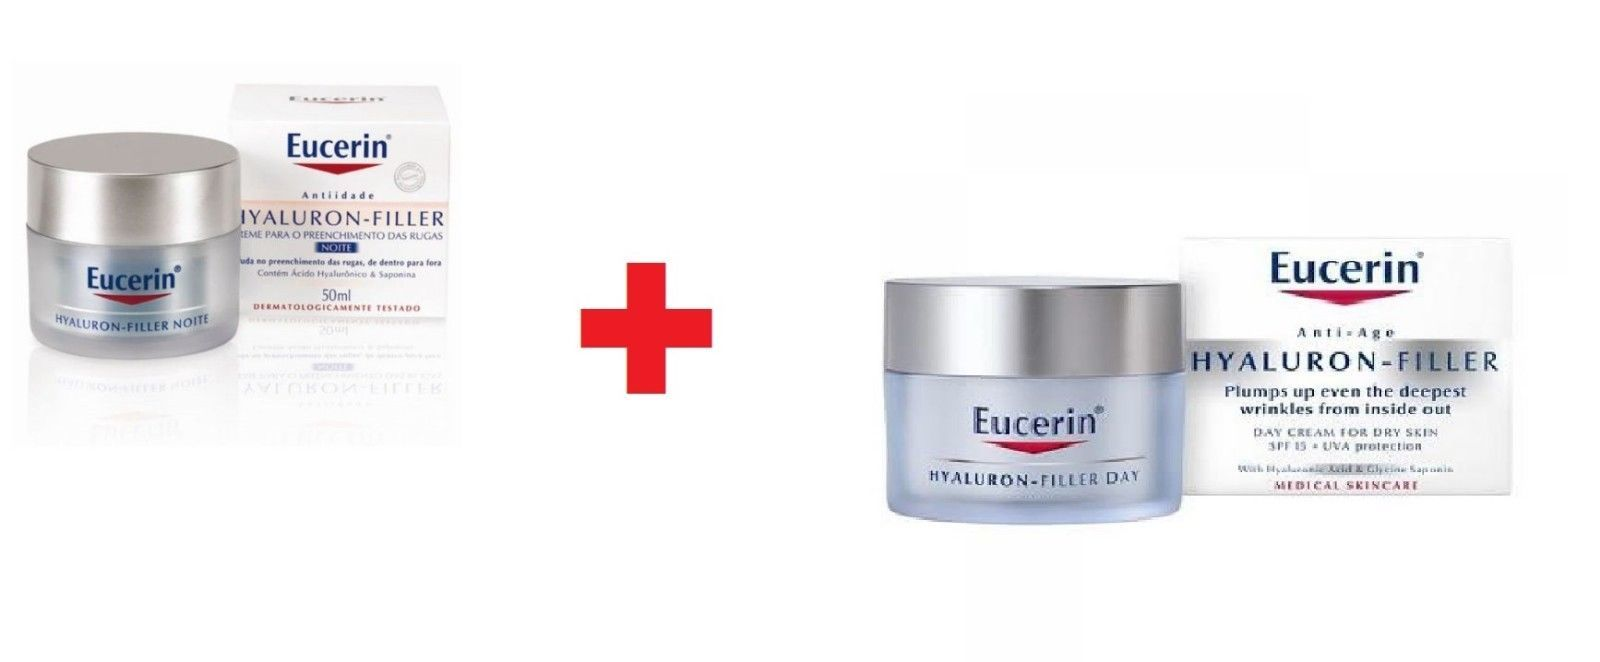 Eucerin Hyaluron Filler Night + Day SPF 15 cream 50ml X 2 - $69.29